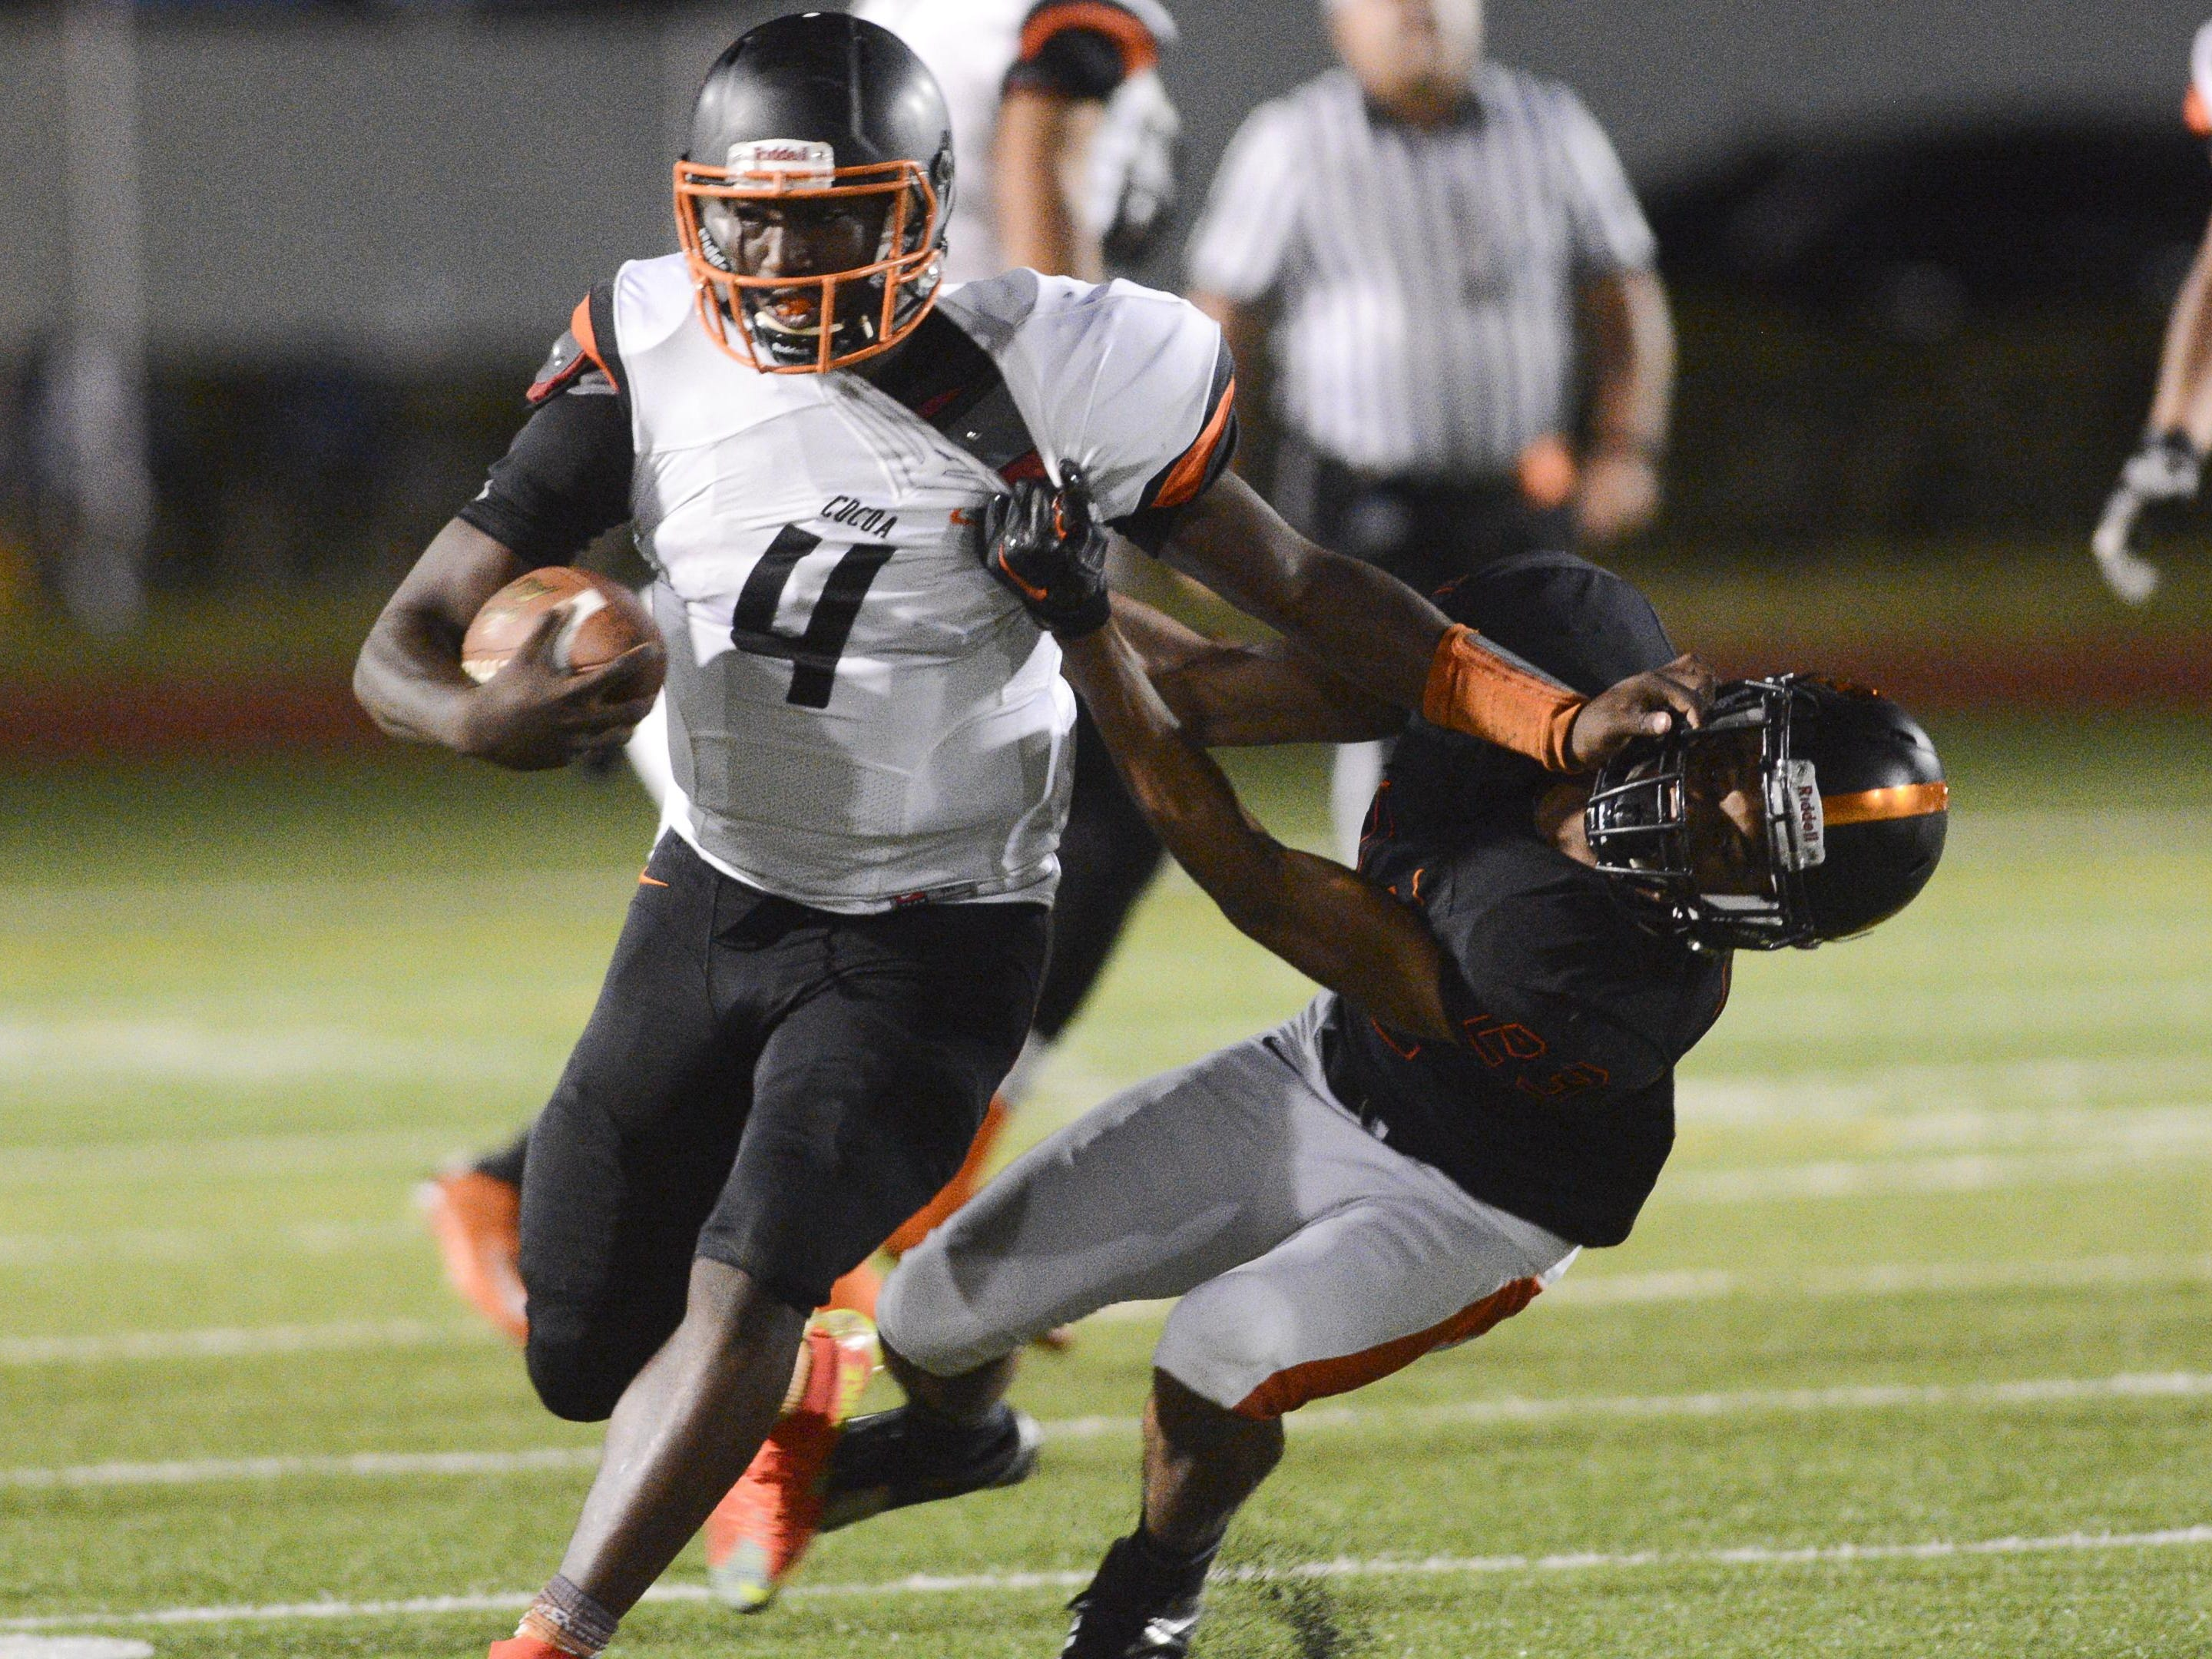 Cocoa QB Bruce Judson (4) tries to fend off Marquis Decius of Booker T. Washington (23) during Friday's game in Miami